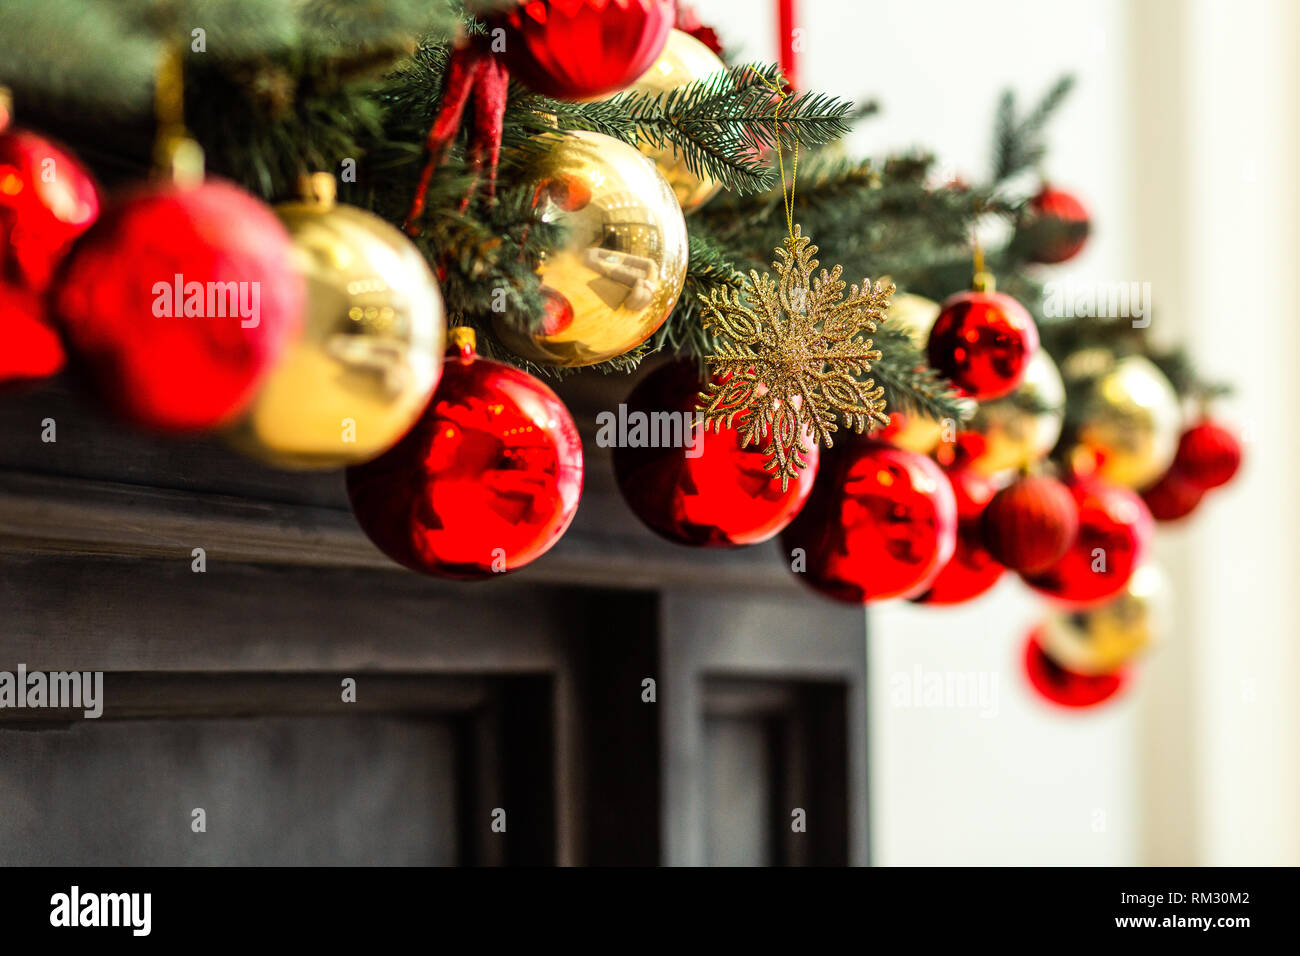 Red and golden christmas ornaments hanging from the christmas tree - Stock Image